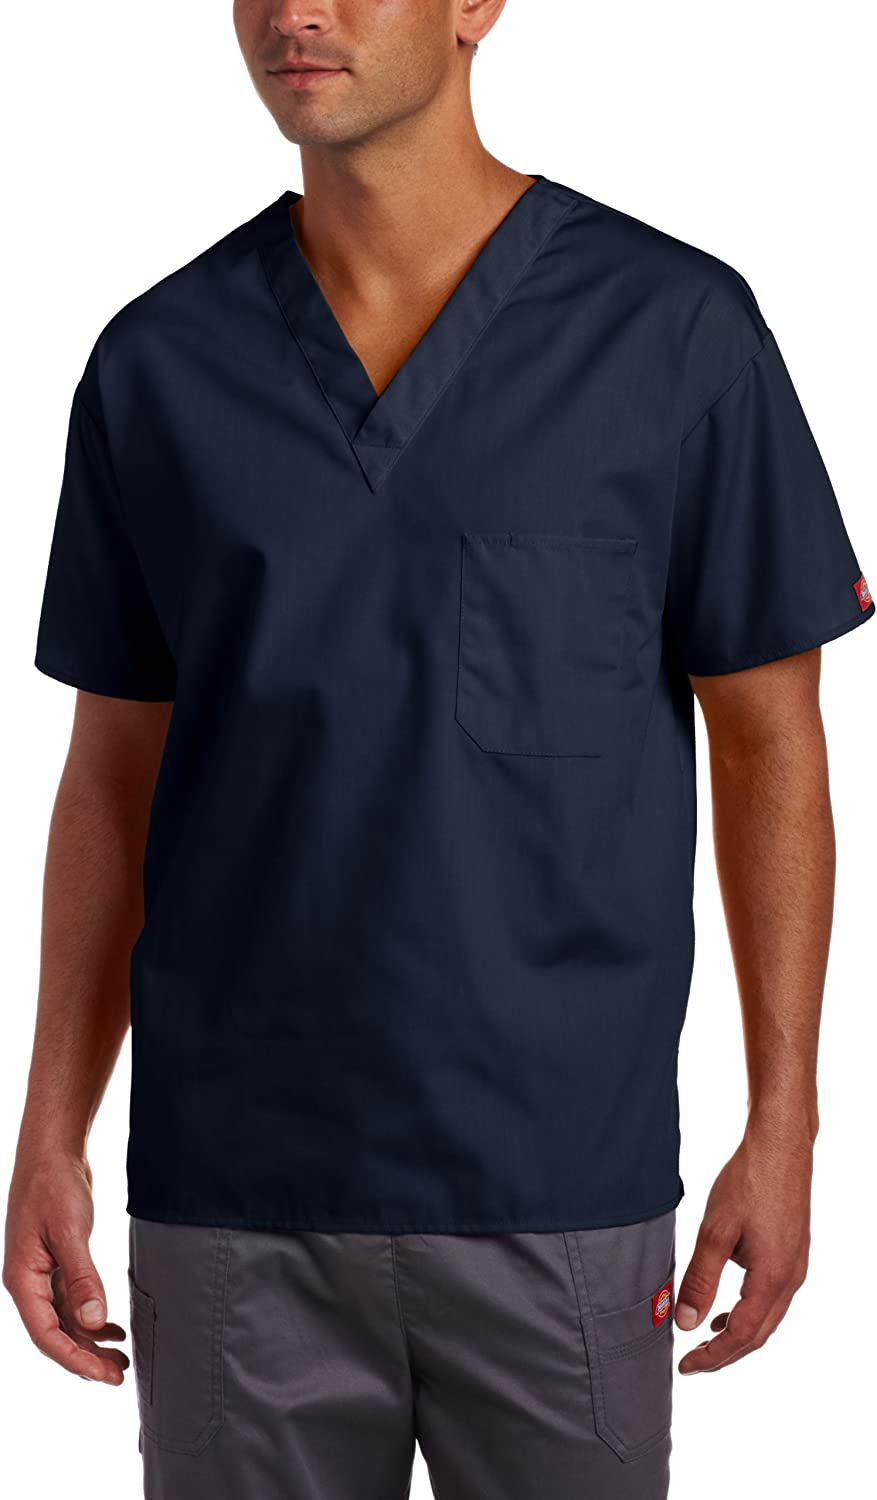 Dickies Big Everyday Scrubs Unisex Plus Size V-Neck Top Solid Scrub Top